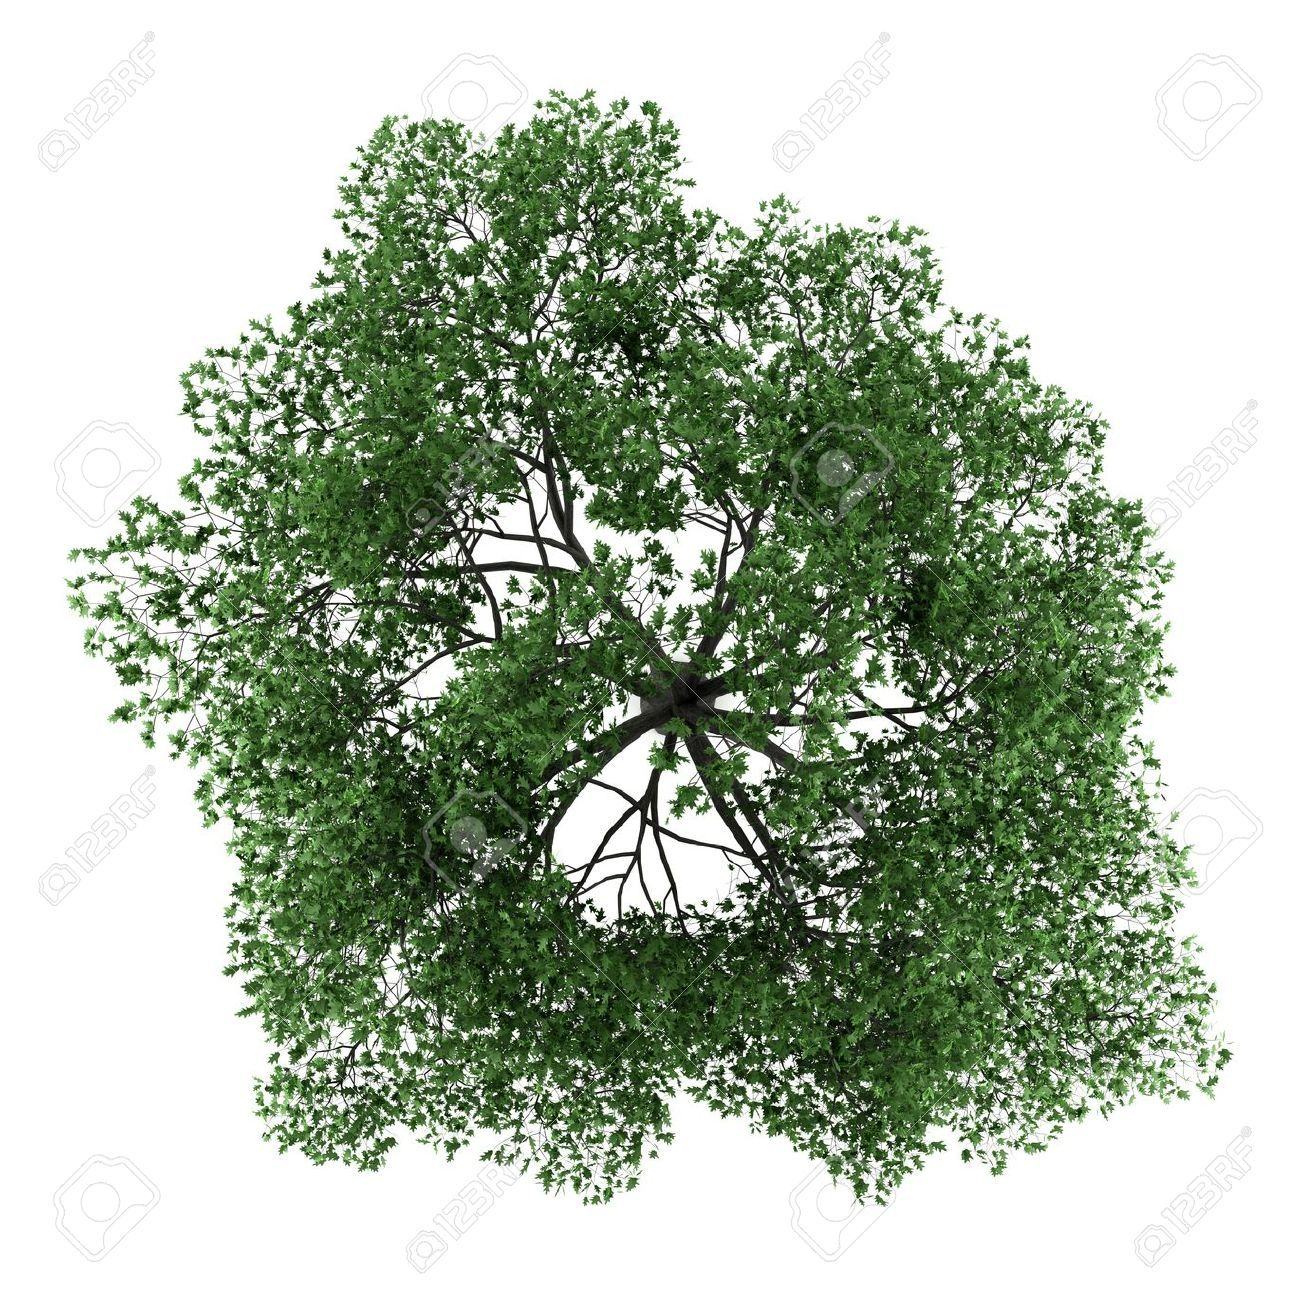 Tree Top View Psd Free Download